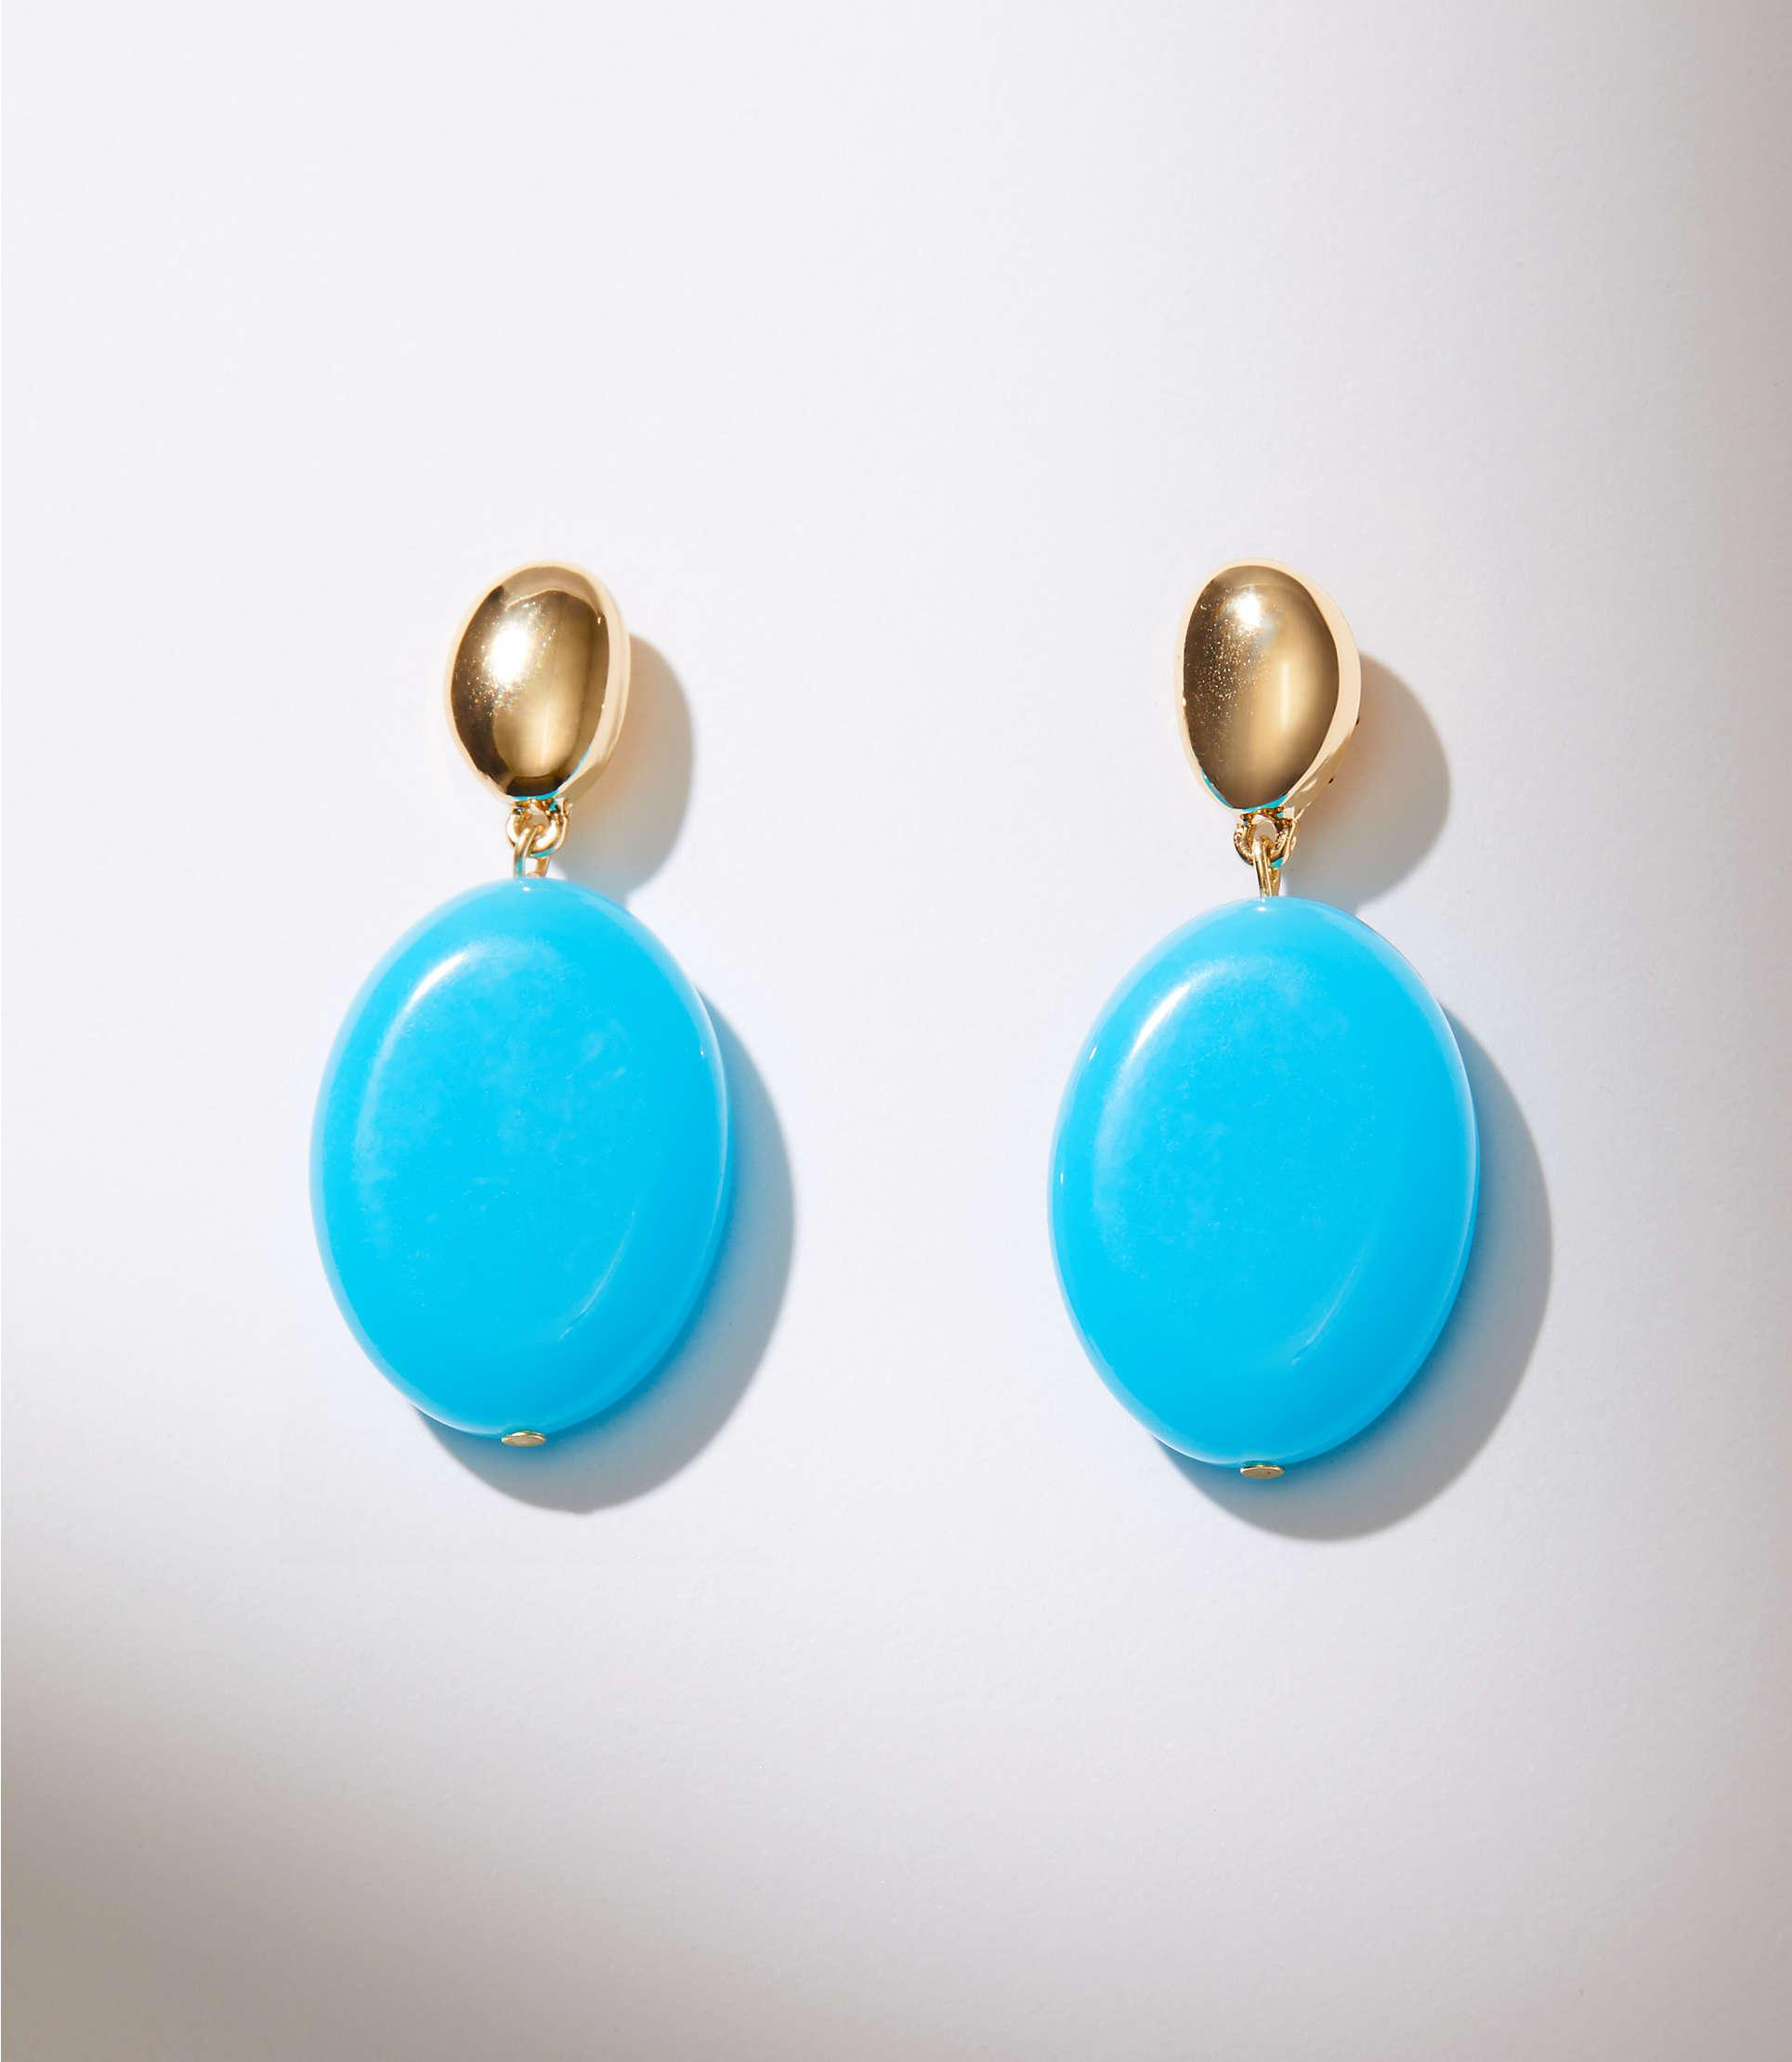 c6f72a4b2 Gallery. Previously sold at: LOFT · Women's Blue Earrings ...